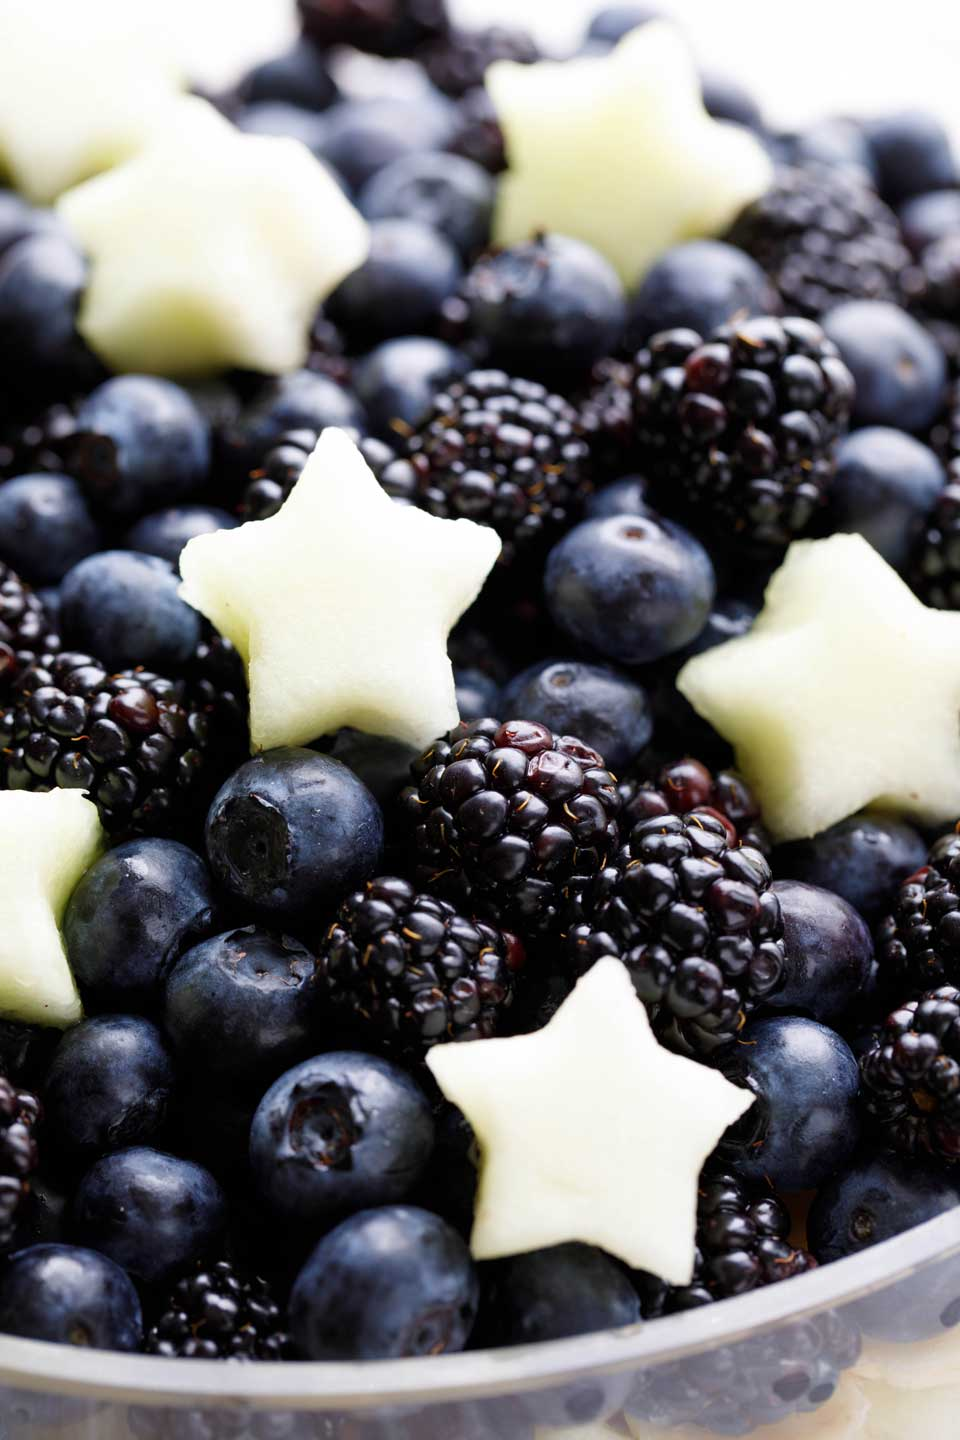 Closeup of blueberries and blackberries, topped with little white stars cut out of a honeydew melon